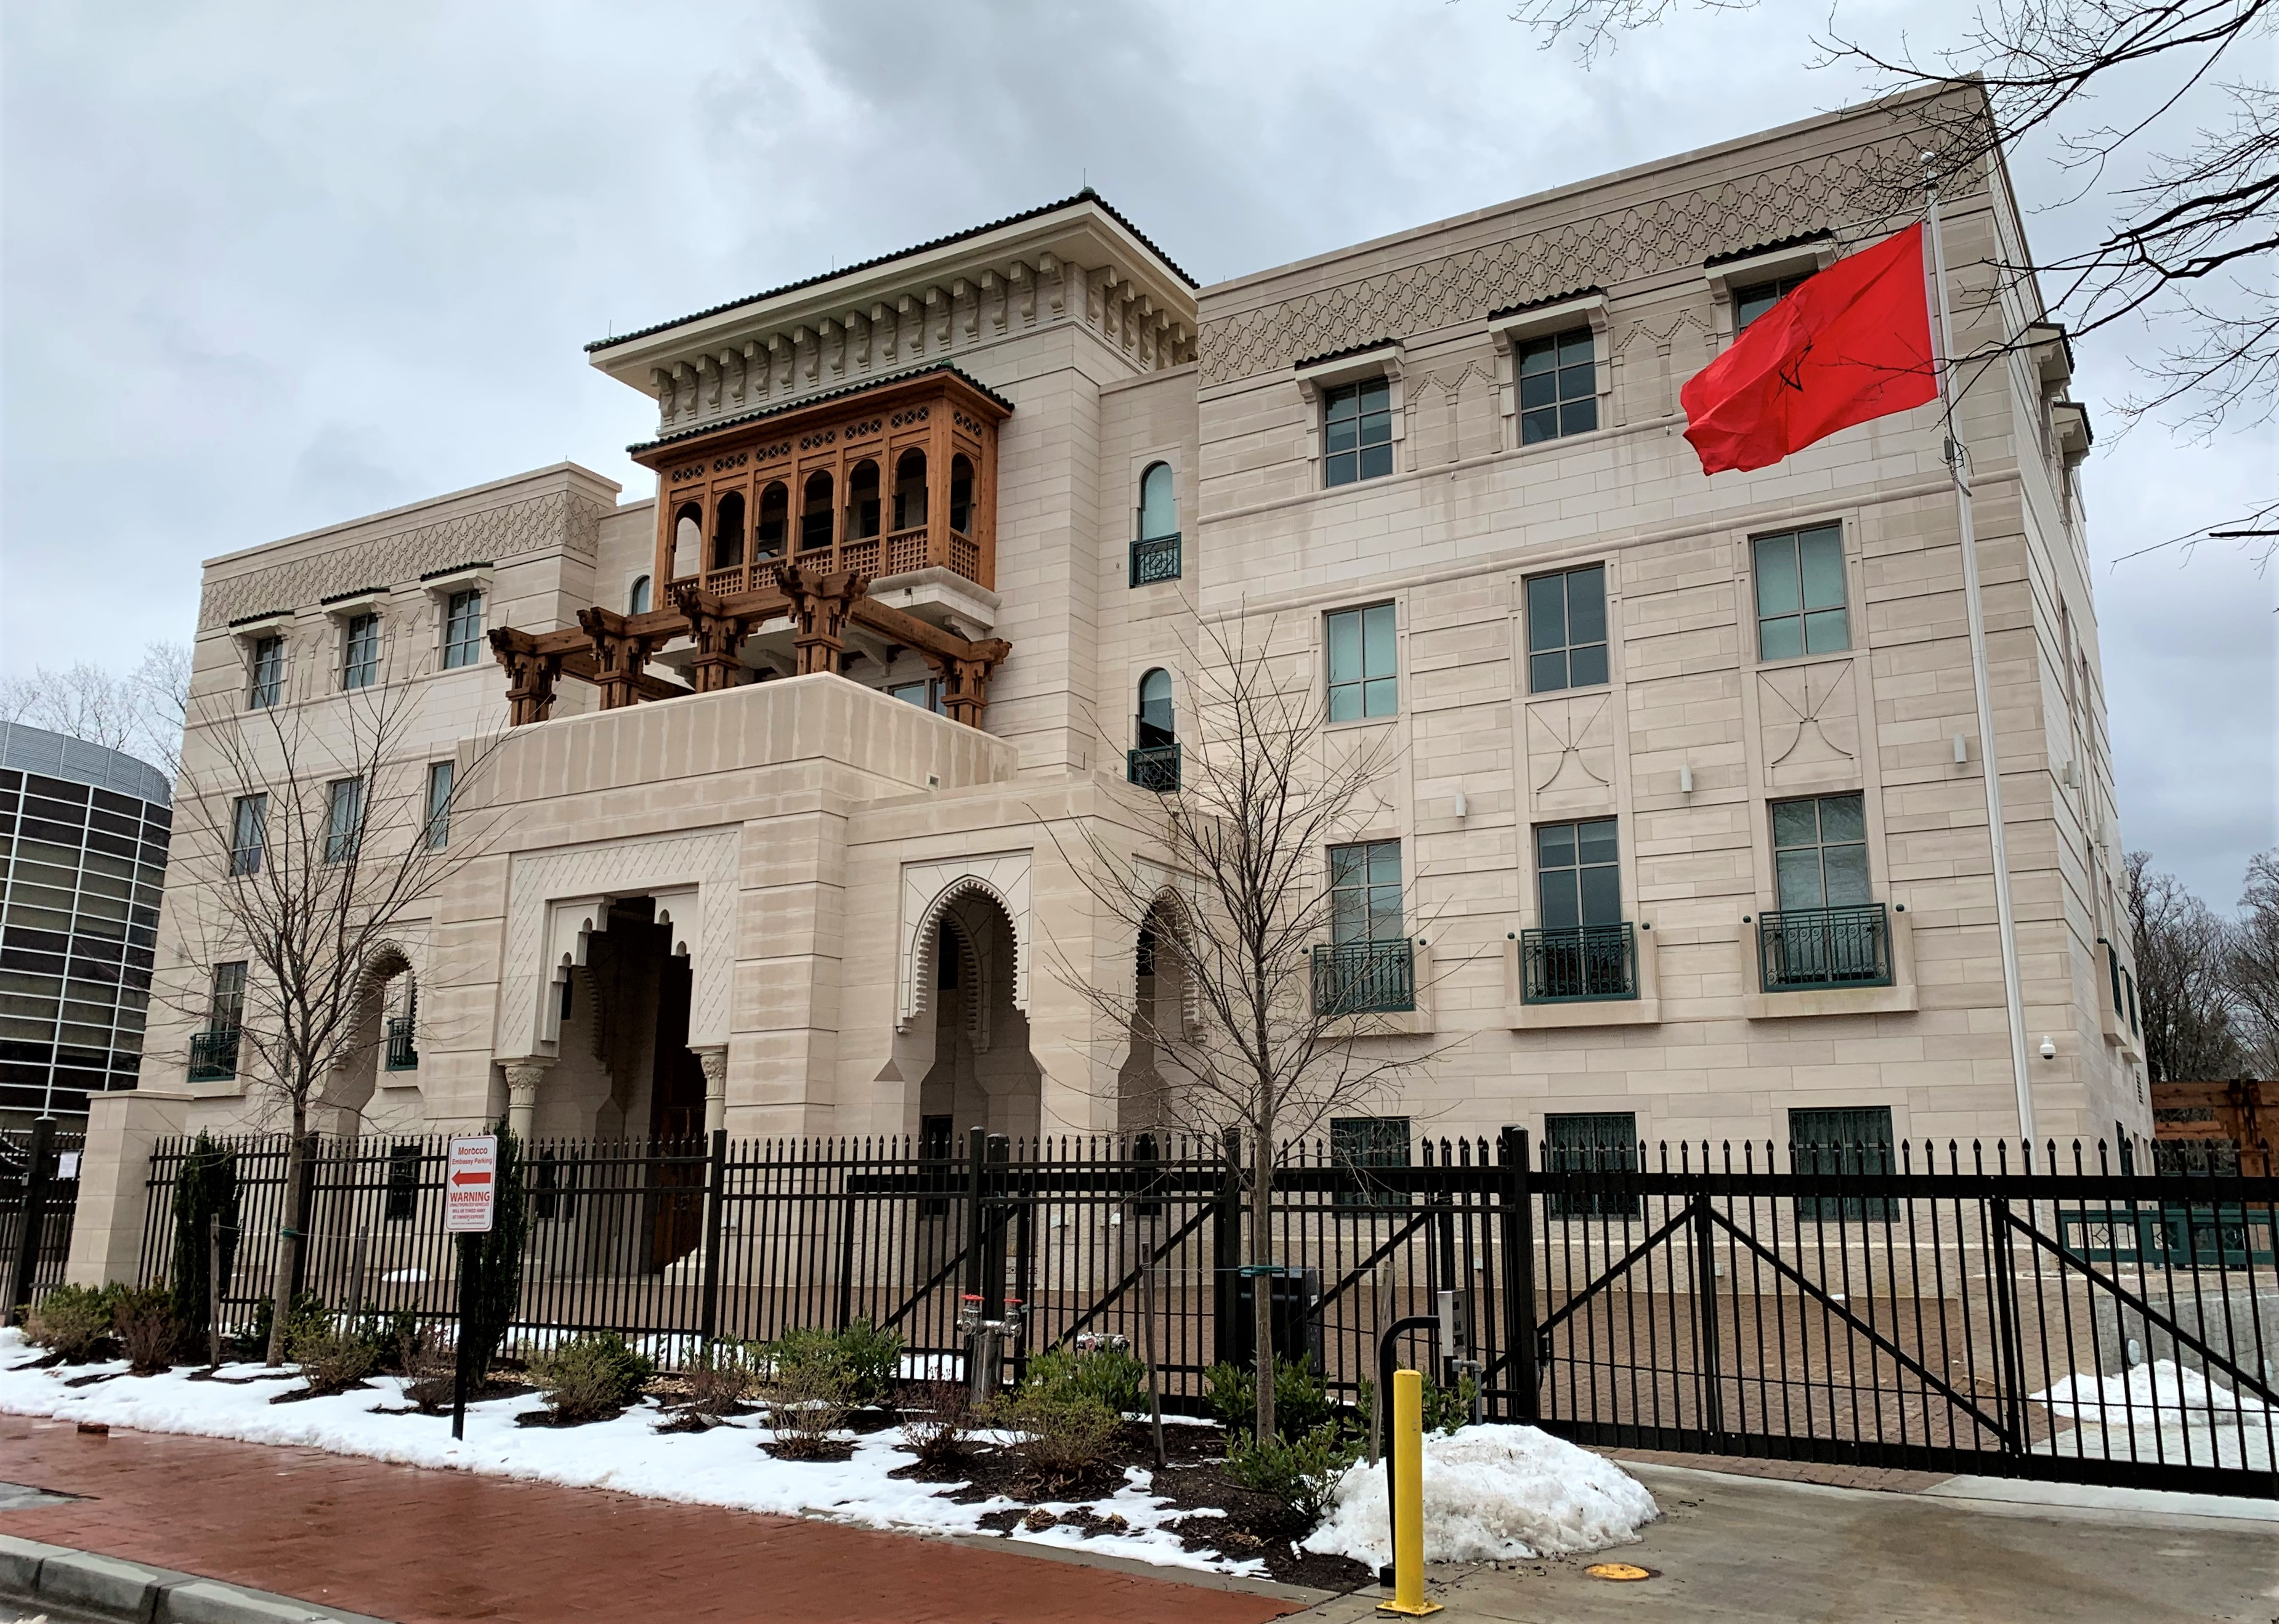 Real Estate & Homes For Sale Near The Embassy of Morocco in Washington, DC. Artyom Shmatko Luxury Real Estate Agent